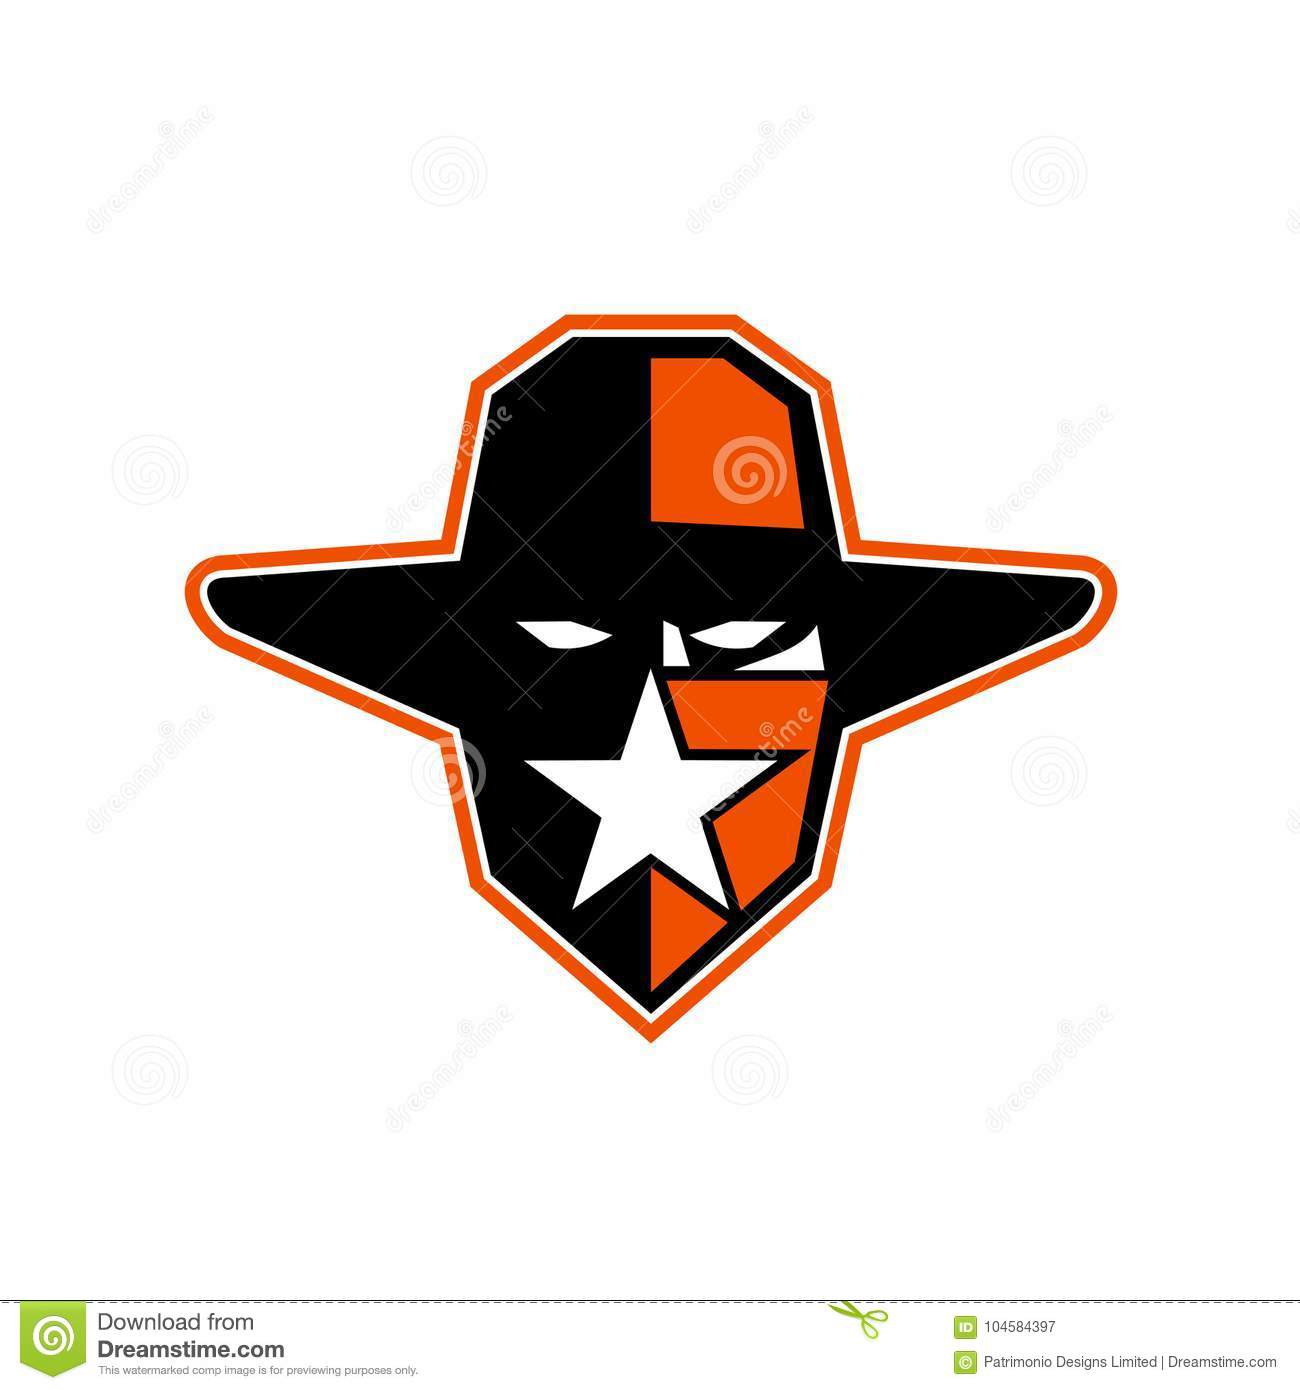 a1ebacc593f Cowboy Outlaw Star Icon stock illustration. Illustration of outlaw ...